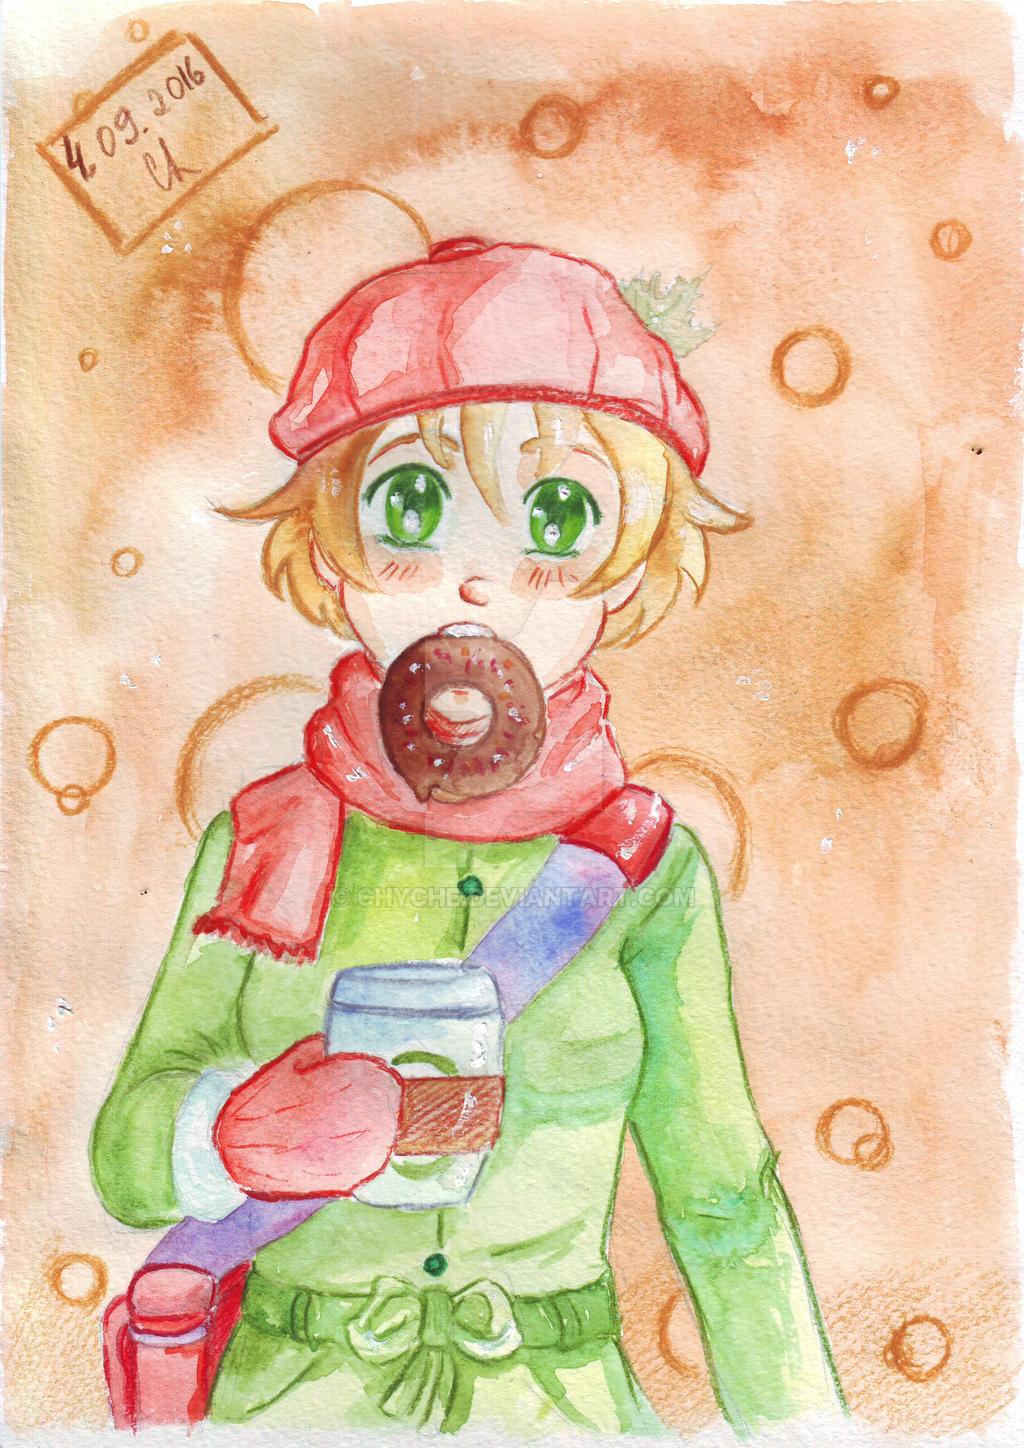 Girl with donut. by Chyche